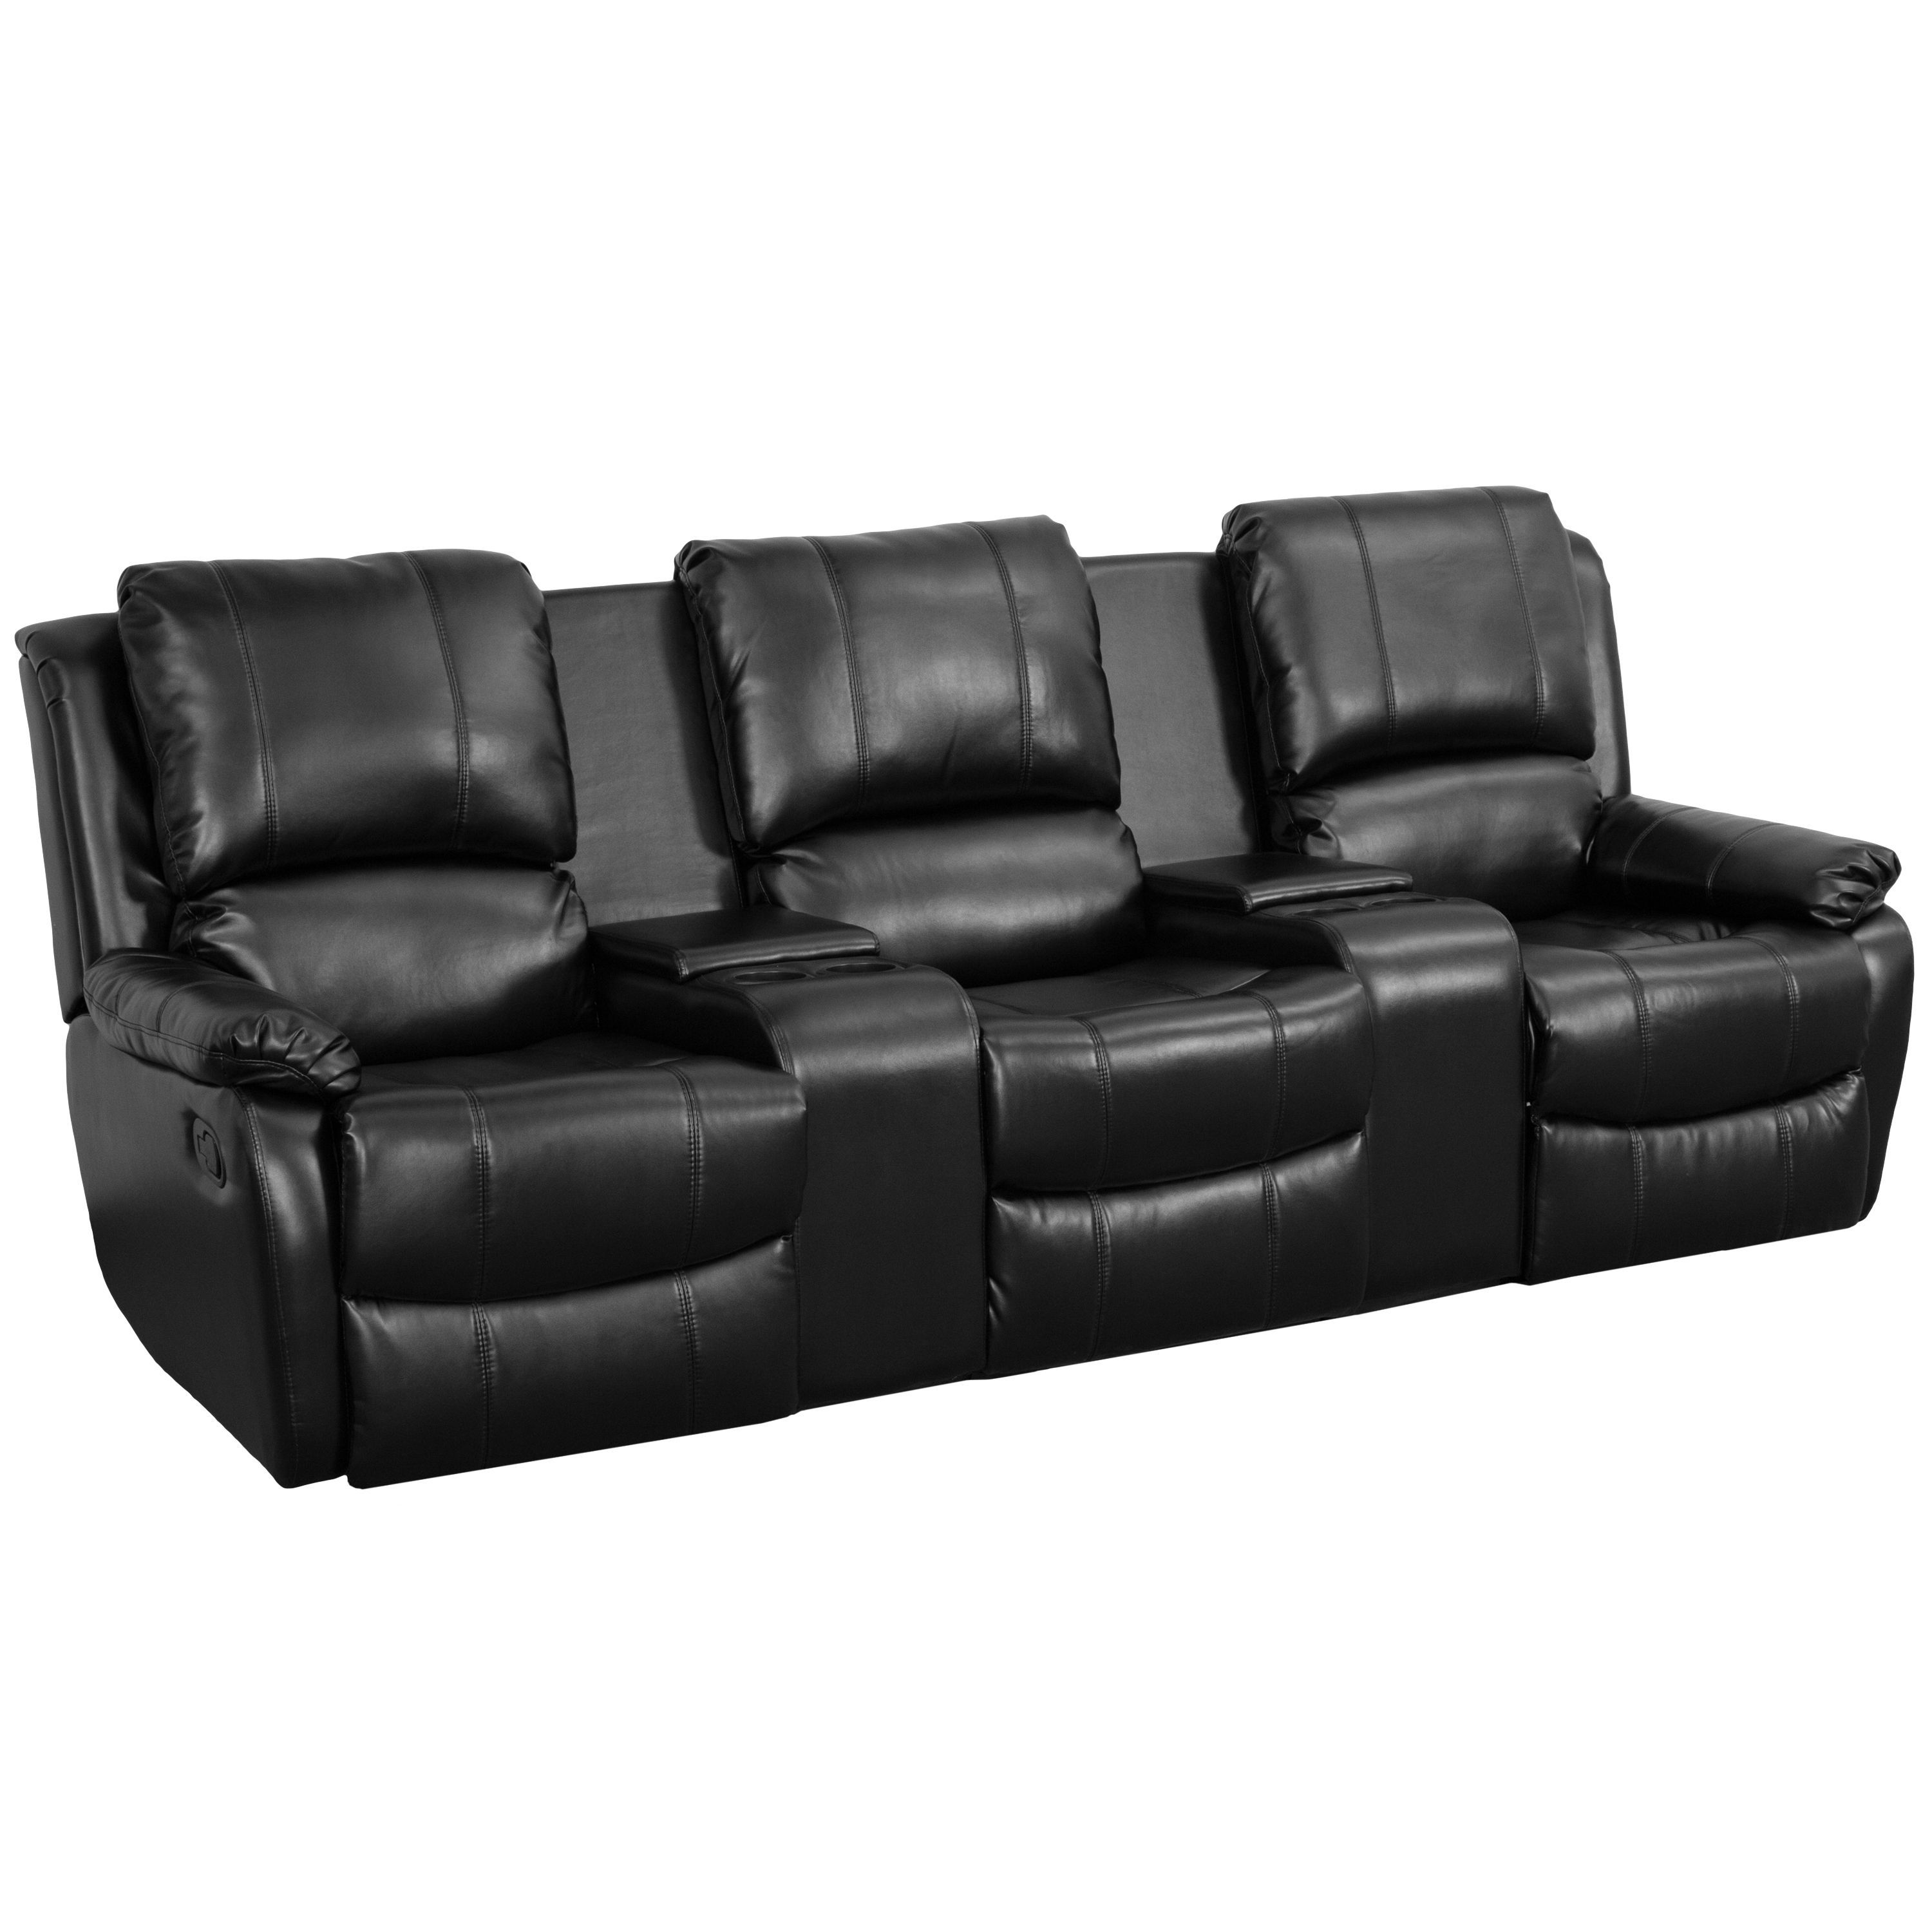 Allure Series 3Seat Reclining Pillow Back Black Leather